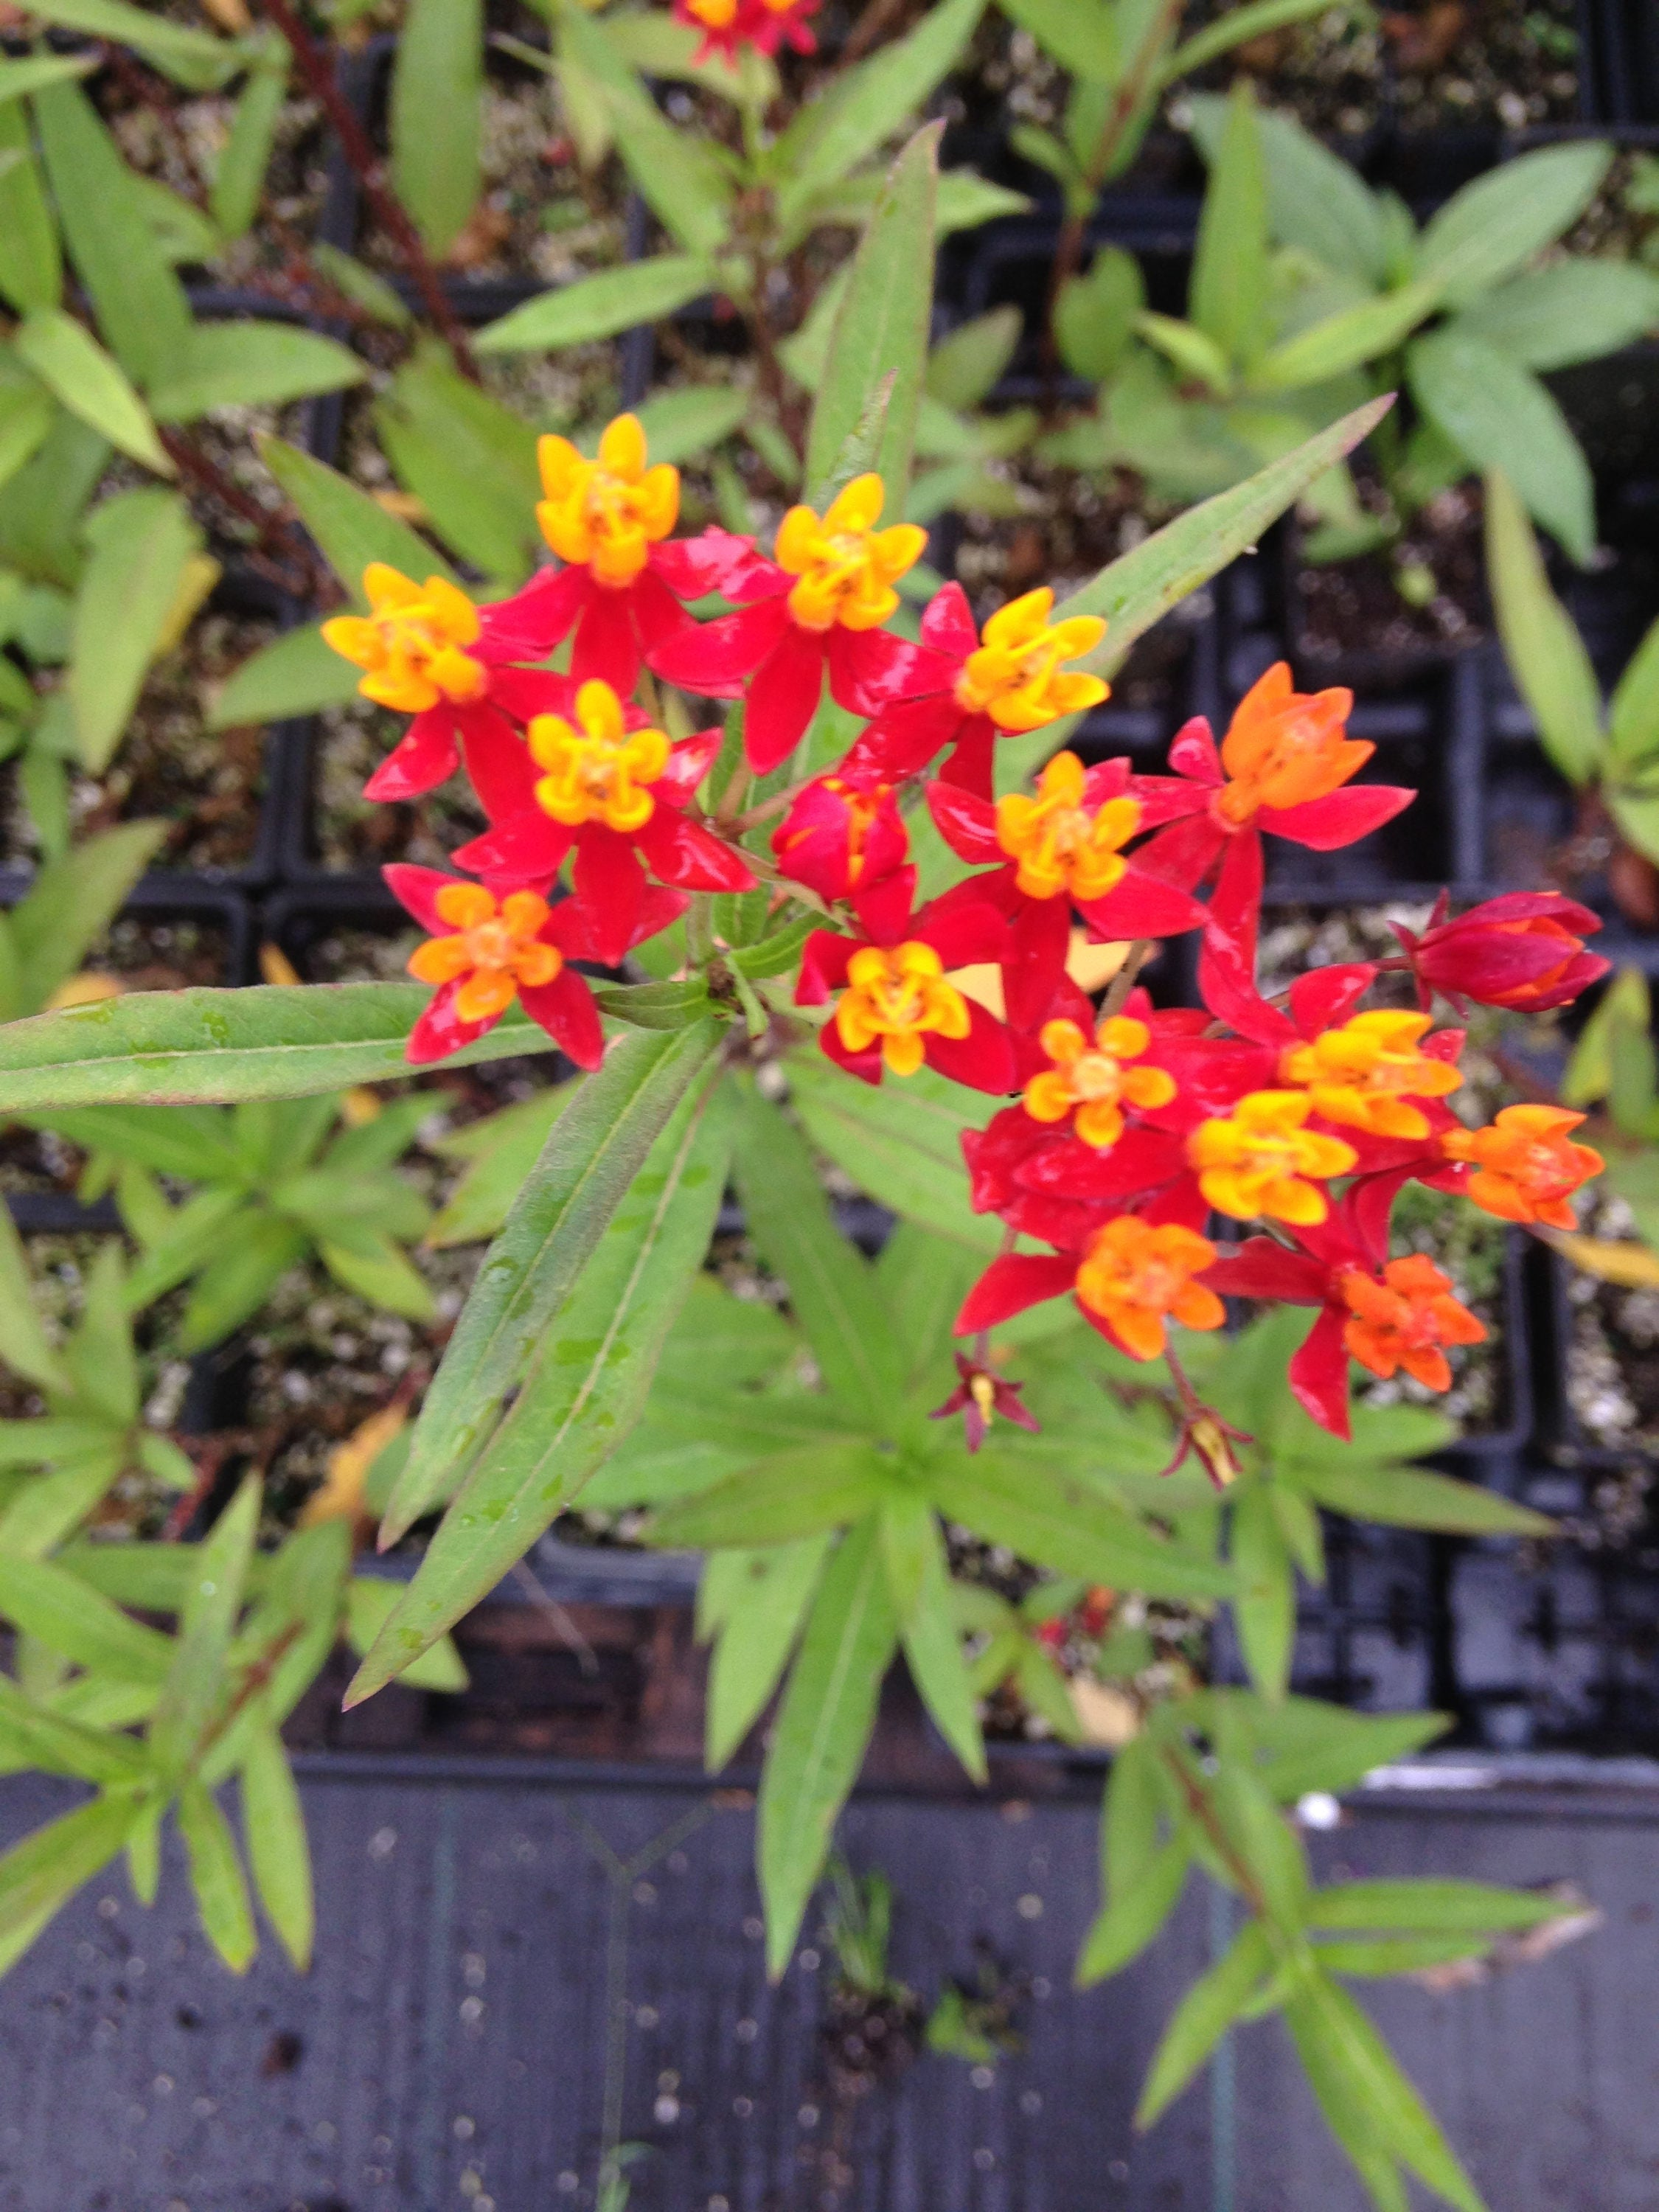 Red Butterfly Milkweed Asclepias Curassavica Red: Asclepias Curassavica Blood Flower 10 Monarch Butterfly Plants